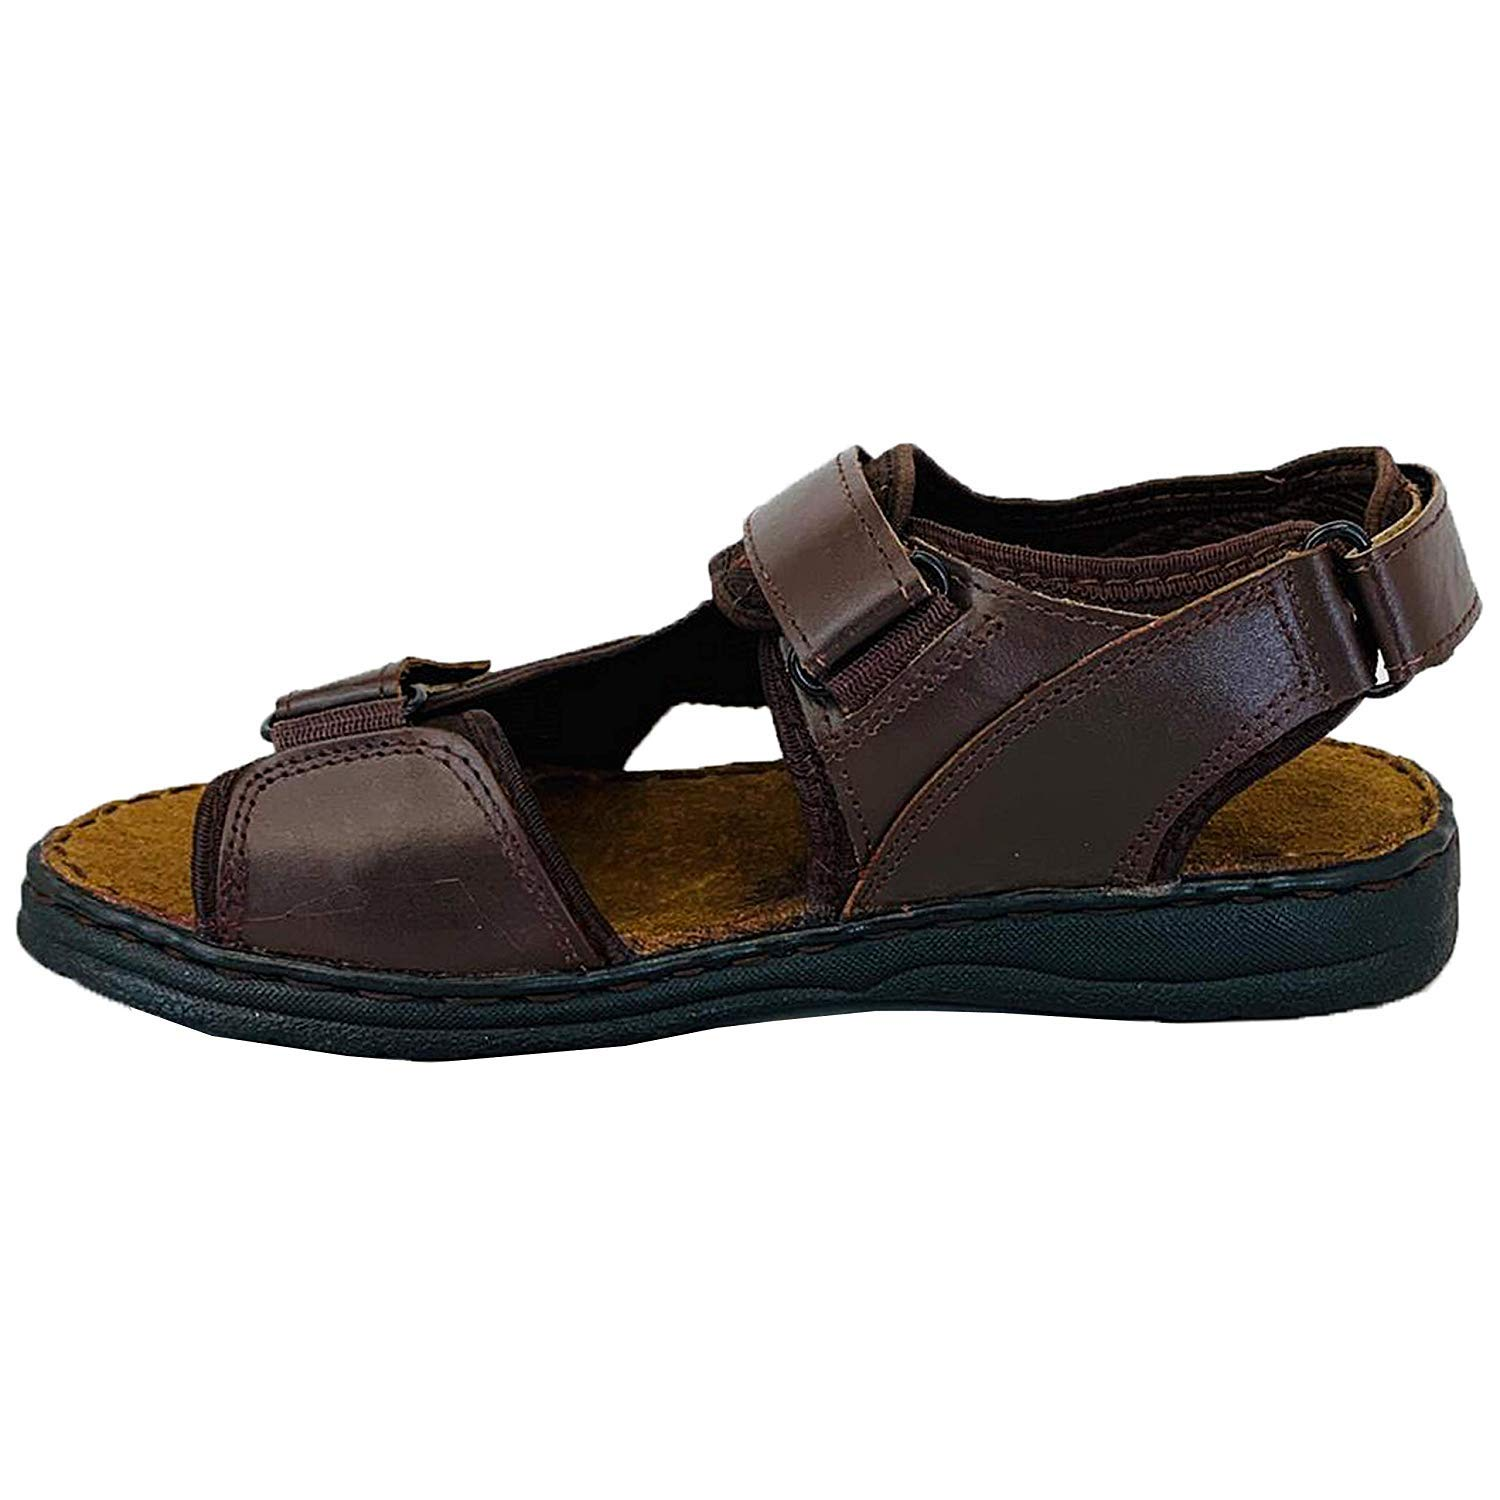 Mens Sandals Open Toe Strap Walking Beach Leather Look Shoes Summer Fashion New